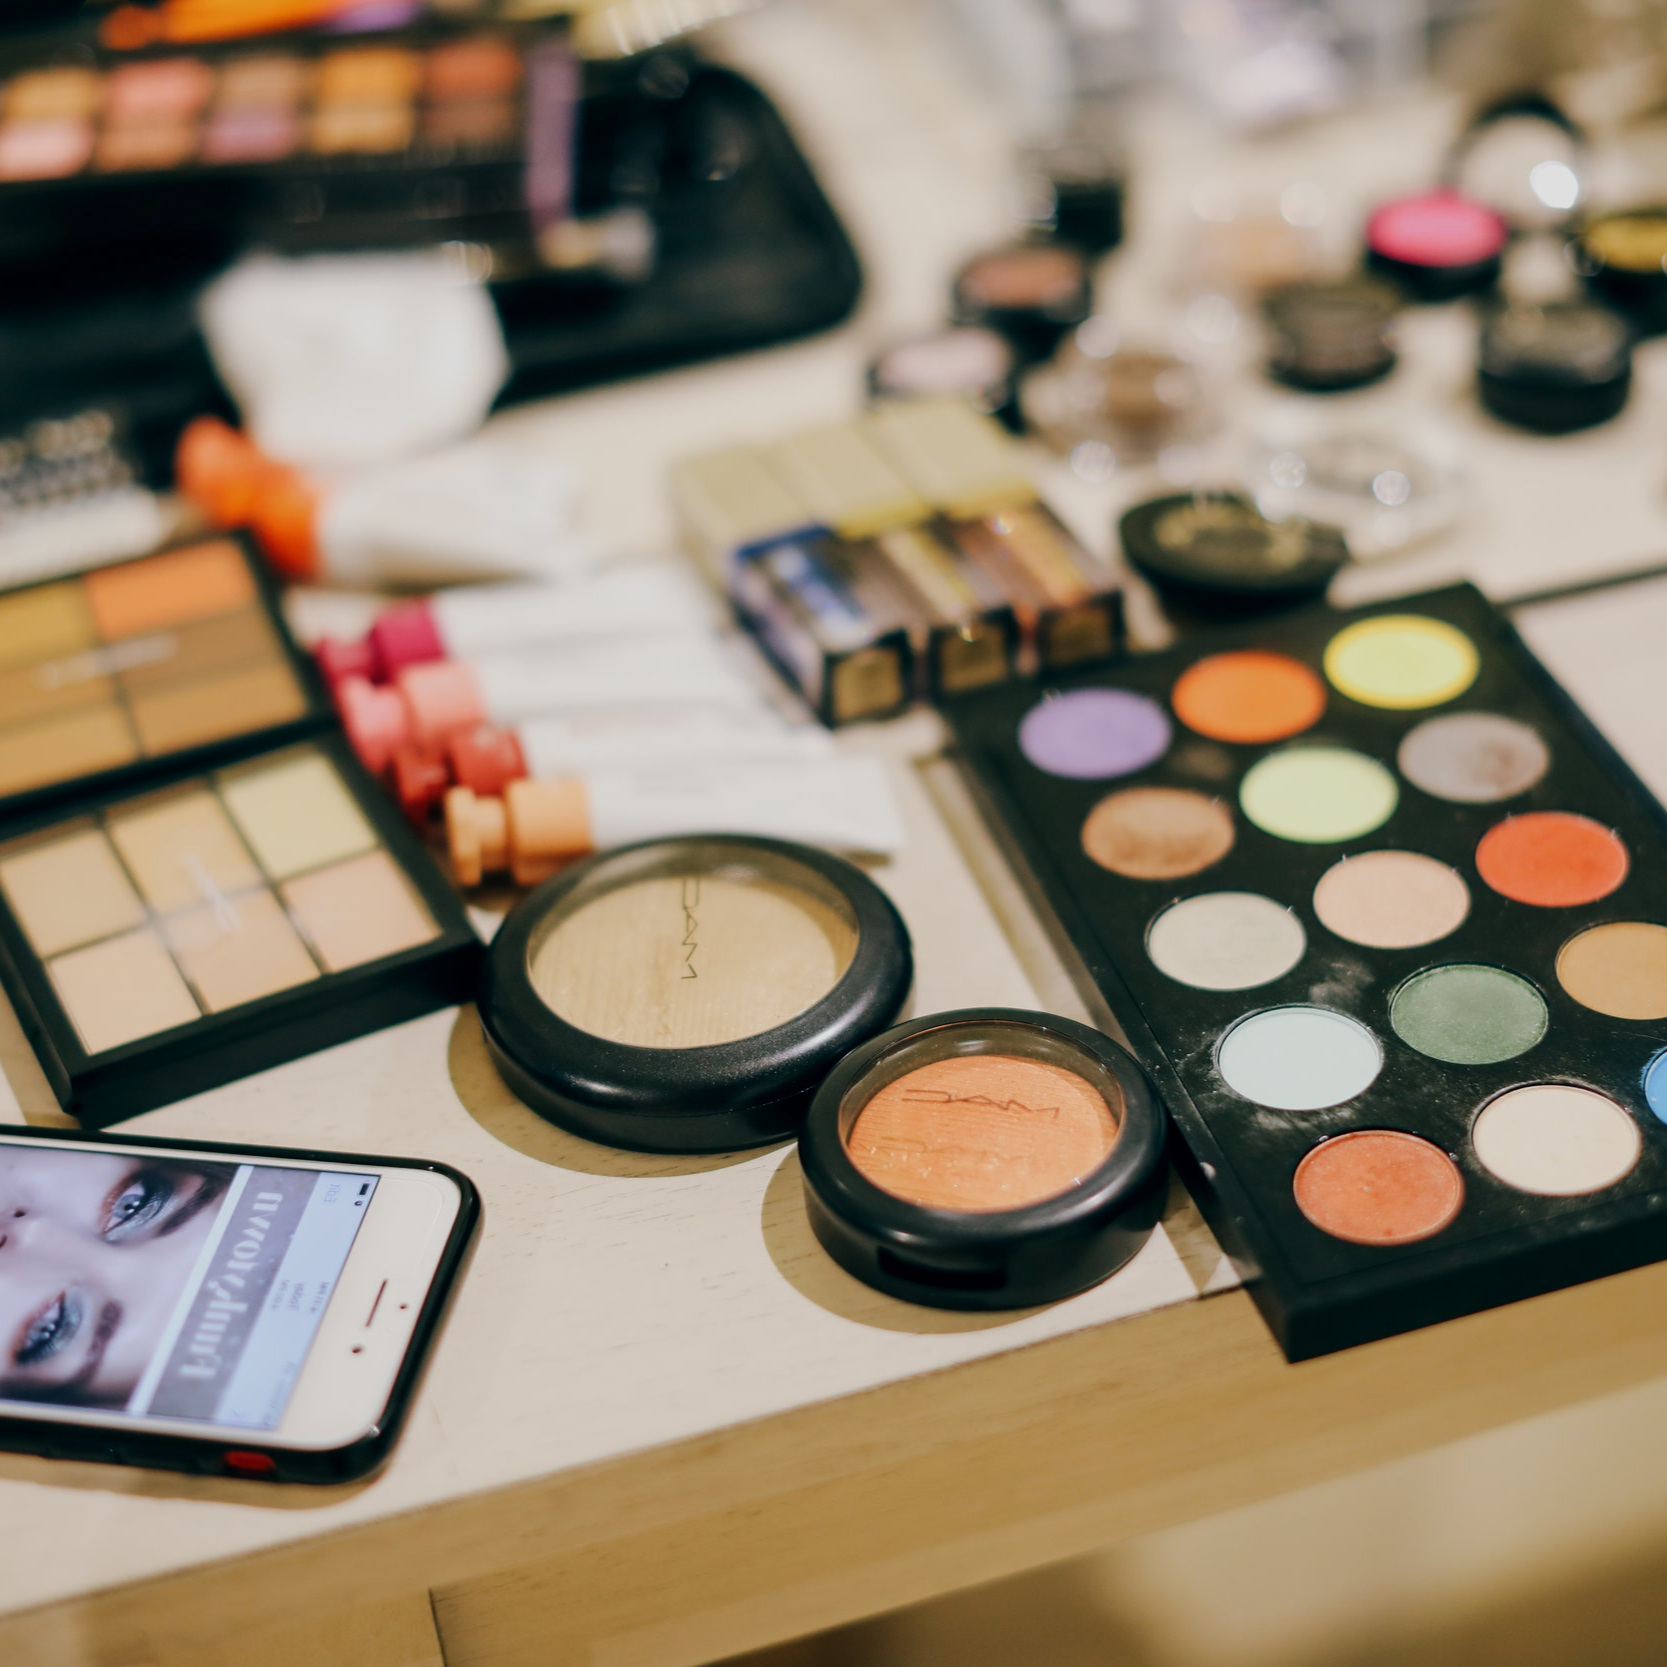 Makeup COnsulting - $109/hourSick of hand-me-down makeup? Do you need some one-on-one direction with choosing and applying the right products for you and your lifestyle? Want to make the switch to all clean products? Or do you just want an overhaul? I can help!